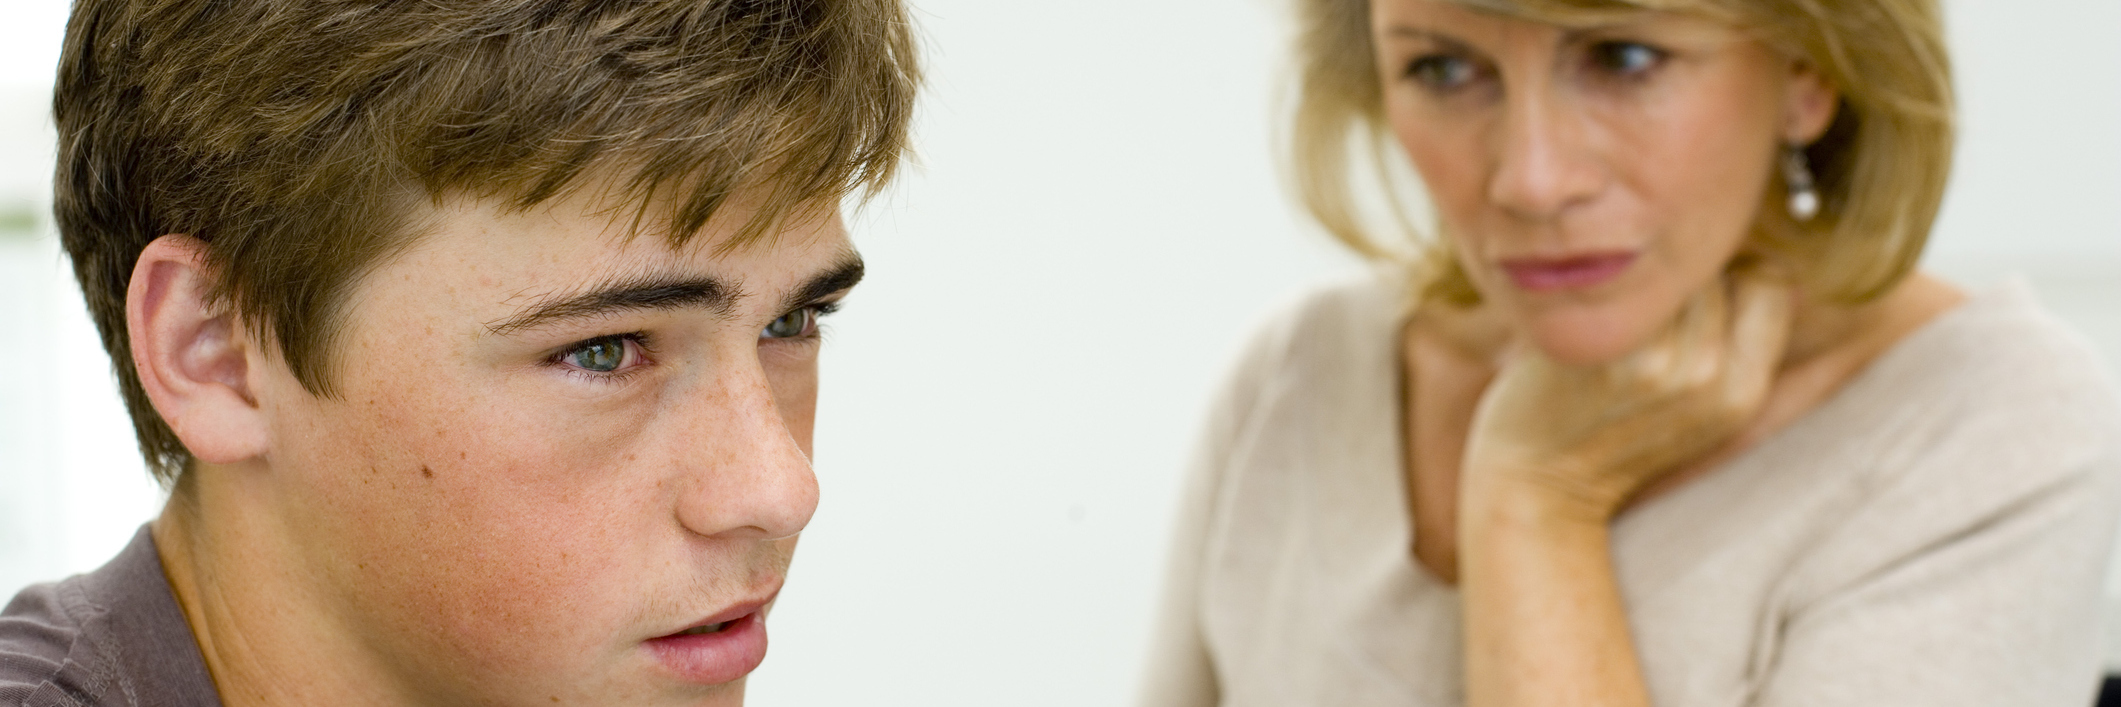 mother talking to teenage son both looking upset